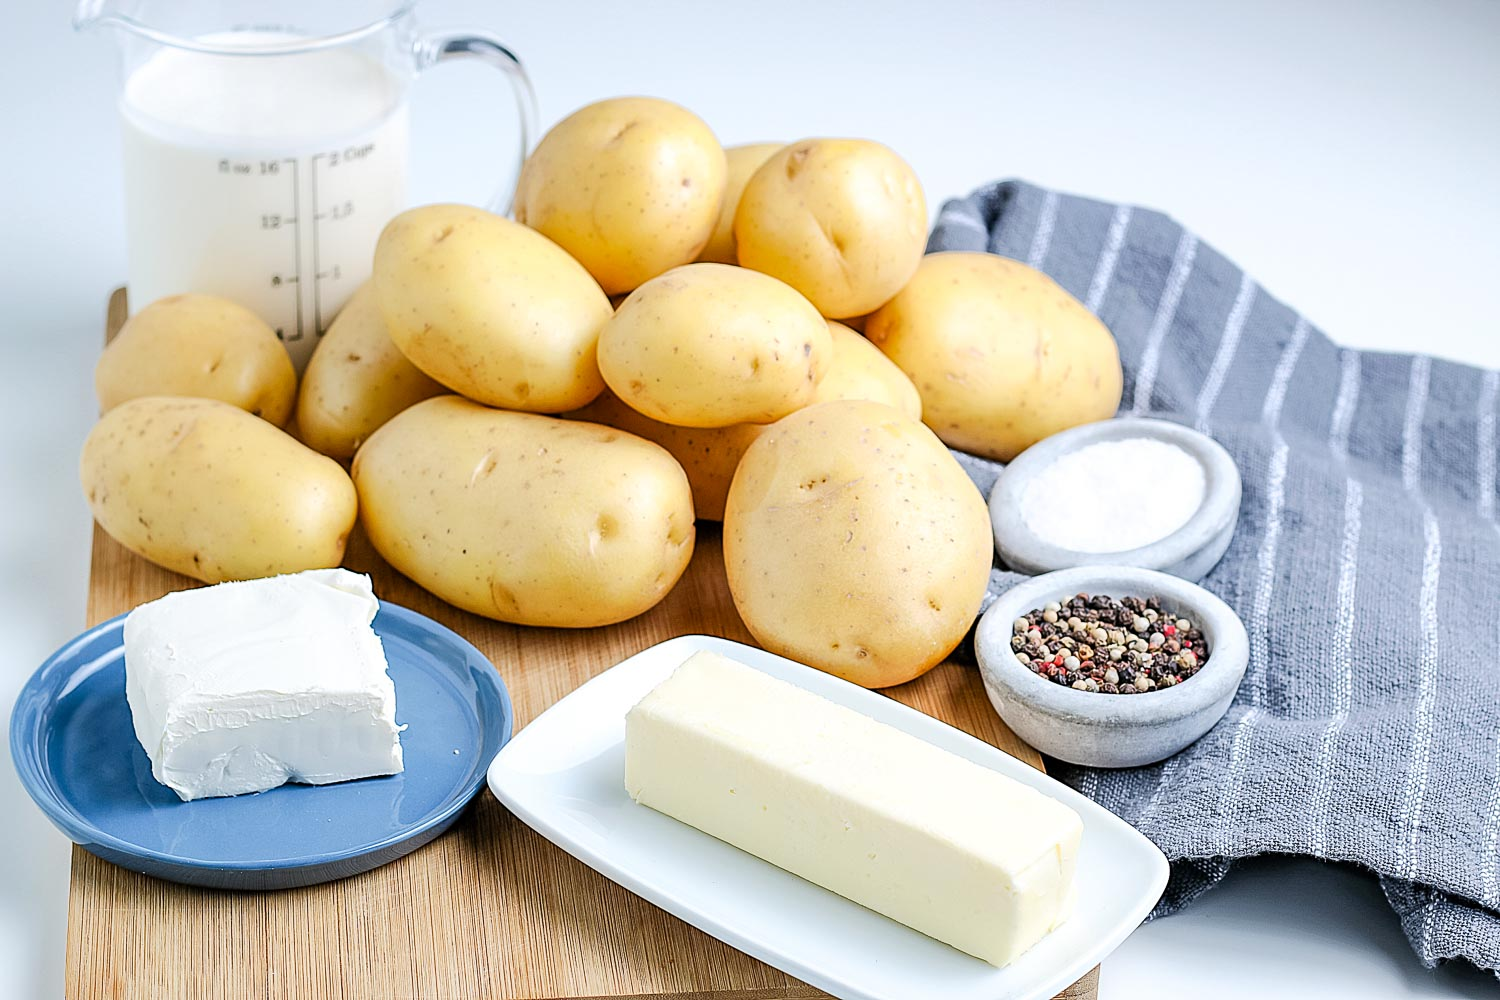 All of the ingredients needed t make creamy mashed potatoes.